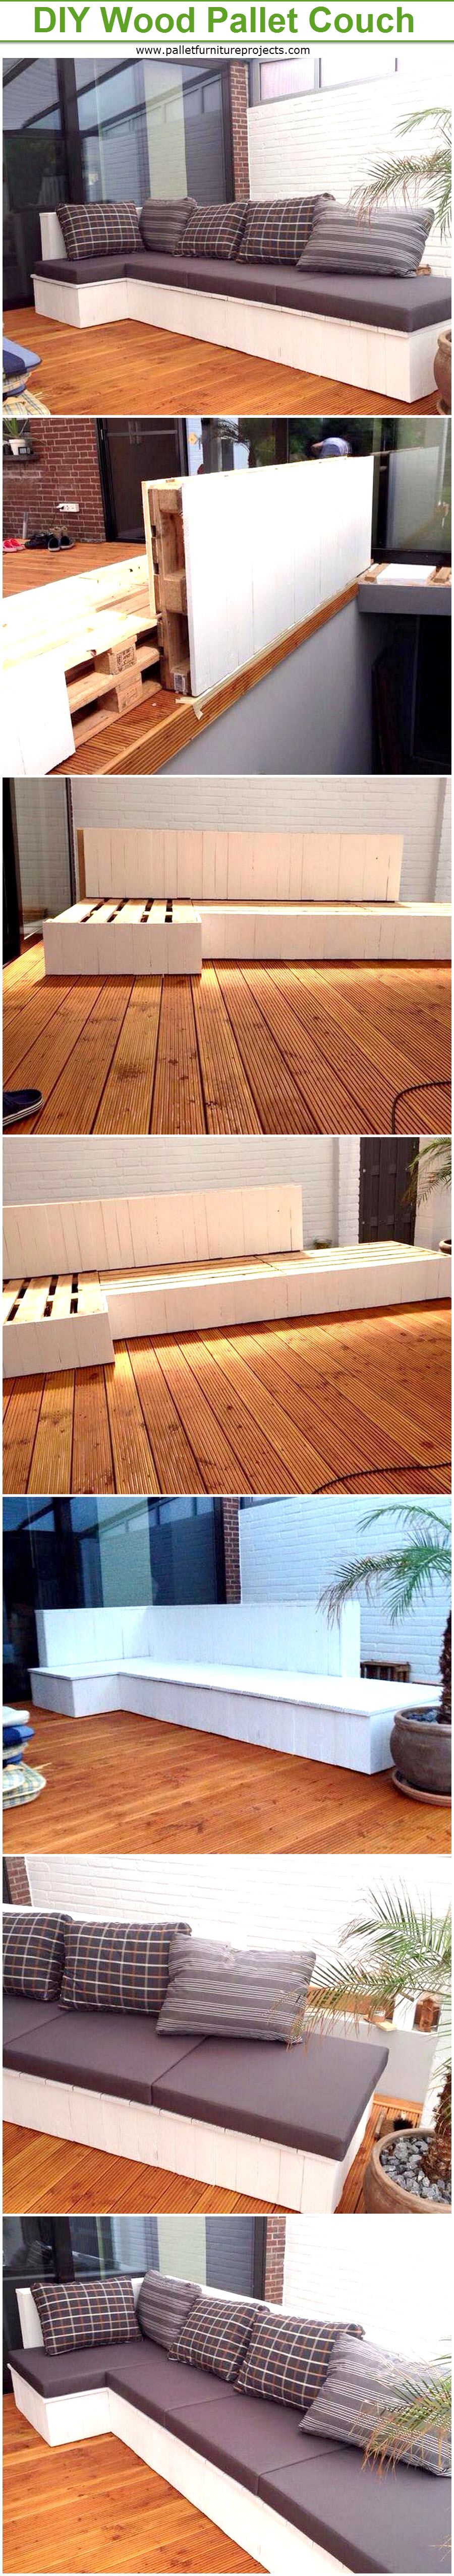 DIY Wood Pallet Cushioned Couch